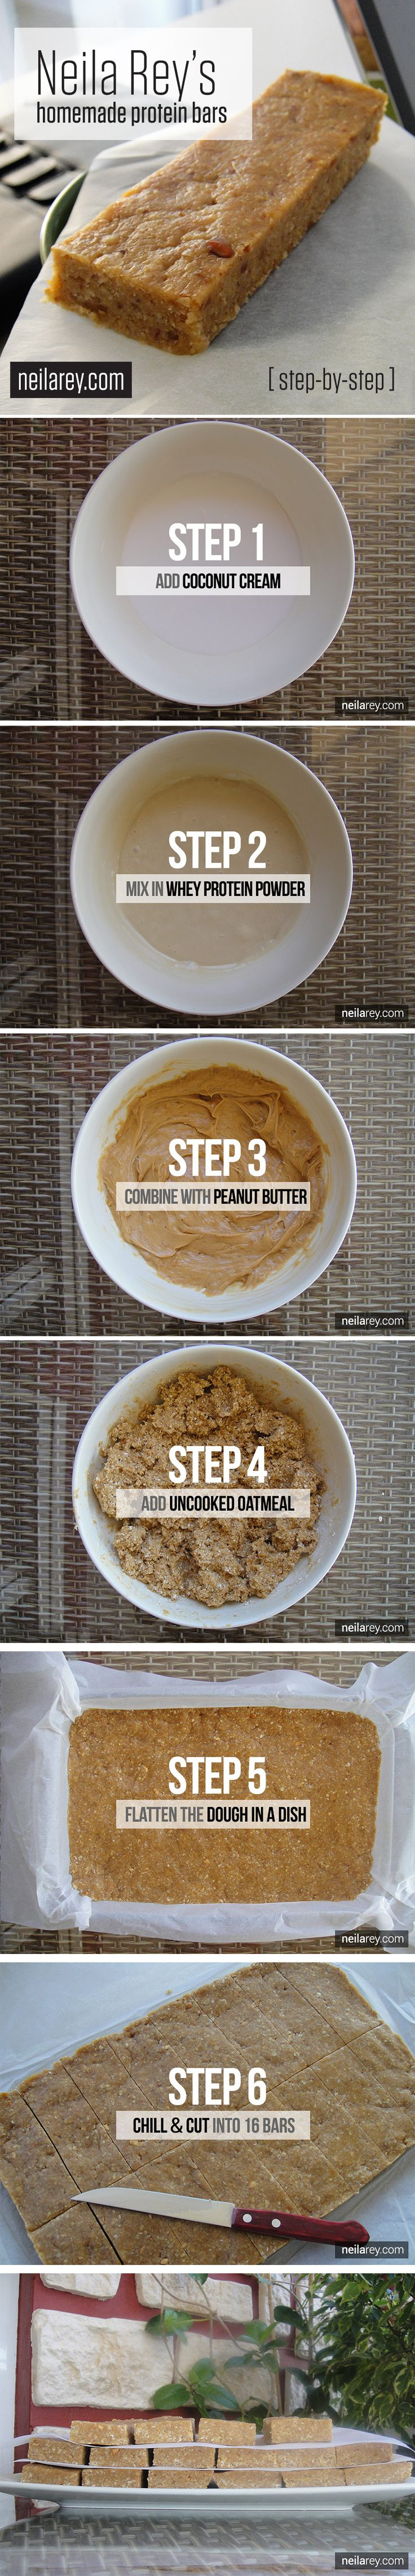 Homemade Protein Bars / Step-by-Step Recipe #healtyhrecipe #recipe #proteinbars  http://papasteves.com/blogs/news/11001973-6-natural-sugar-blockers